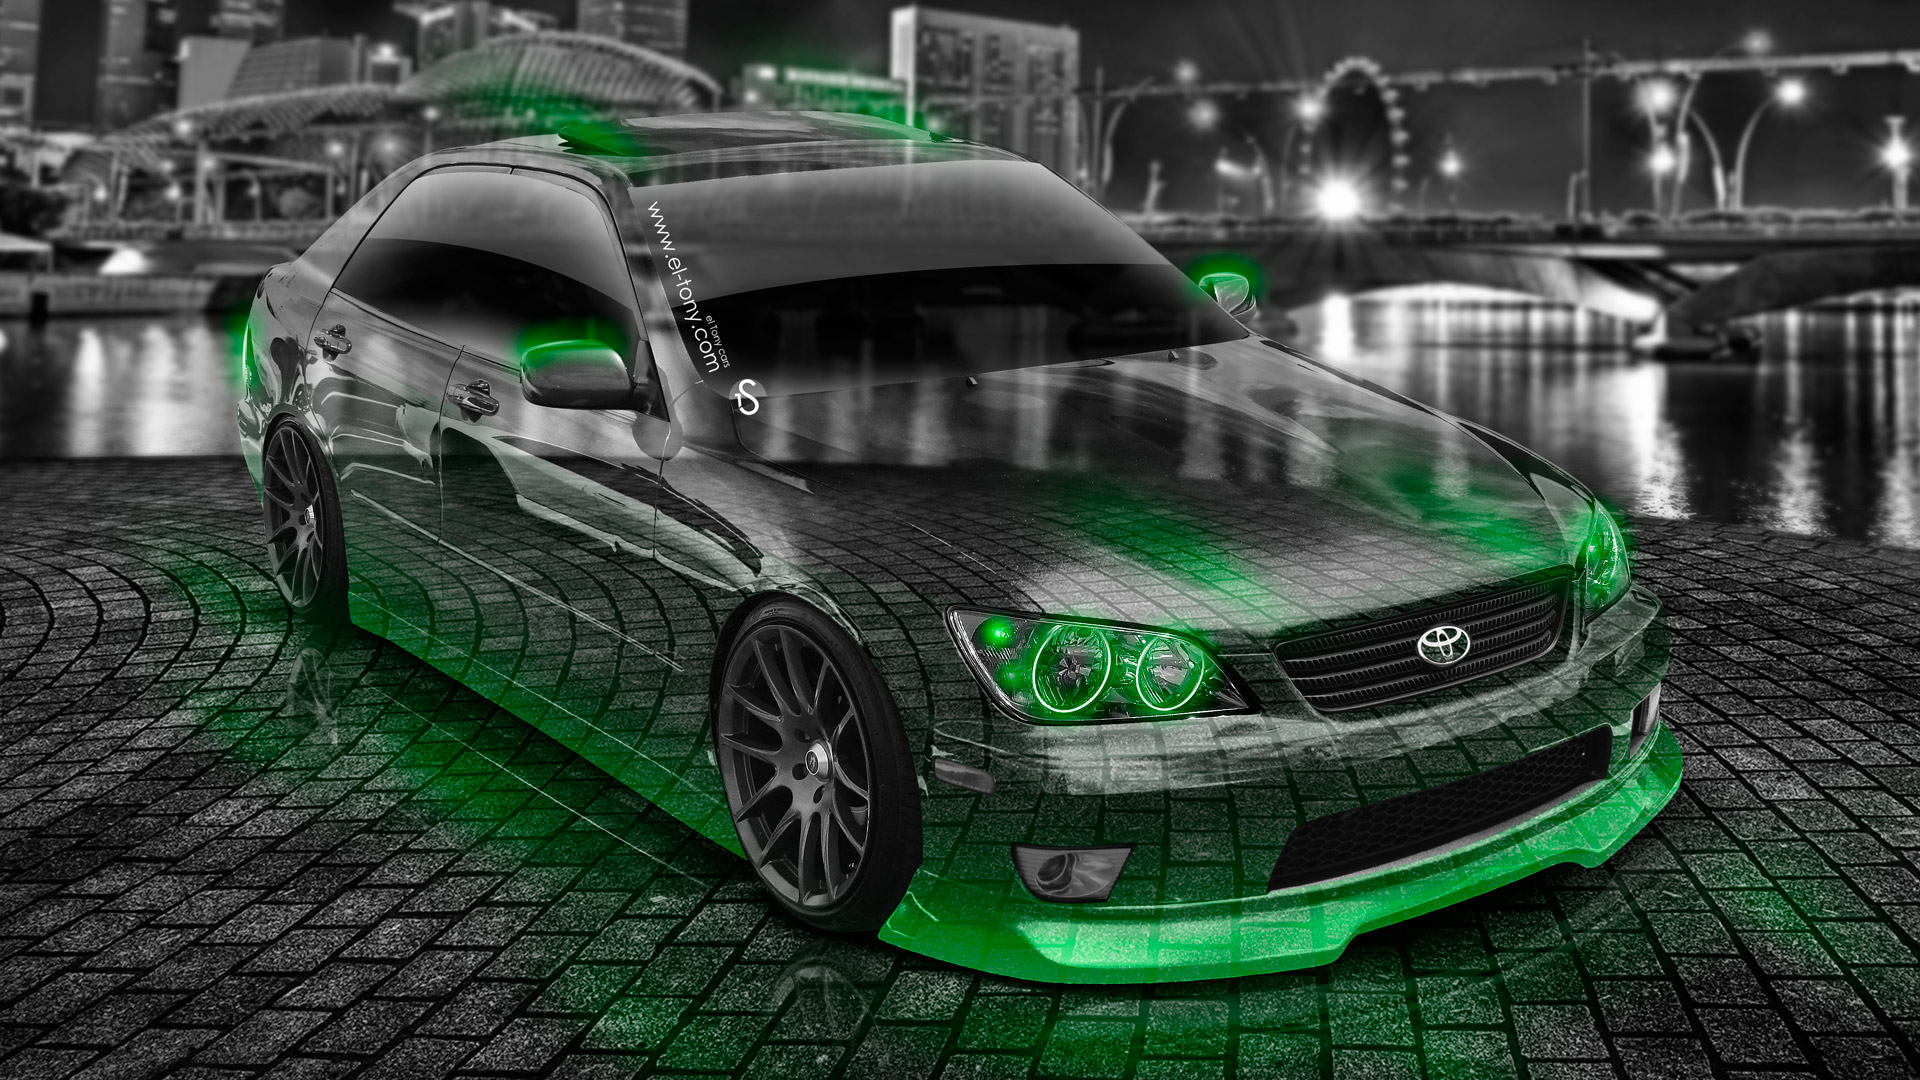 Toyota Altezza Jdm Crystal City Car Green Neon Hd Wallpapers Design By Tony Kokhan Www El Tony Com